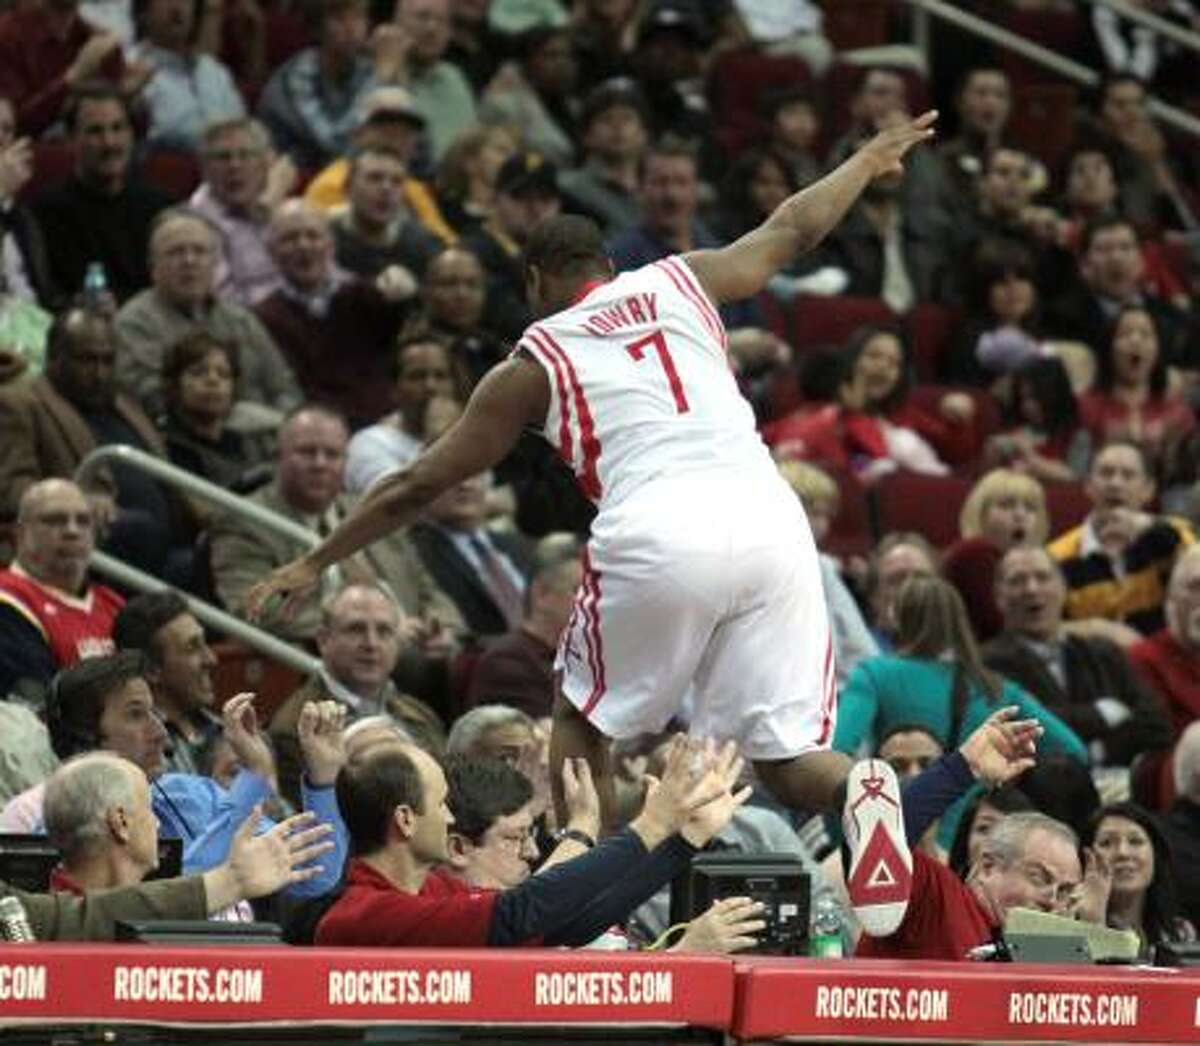 After being shoved off the court, Houston Rockets guard Kyle Lowry (7) leaps into the crowd in the fourth quarter of the Houston Rockets match-up with the Los Angeles Clippers at Toyota Center in Houston, Texas.